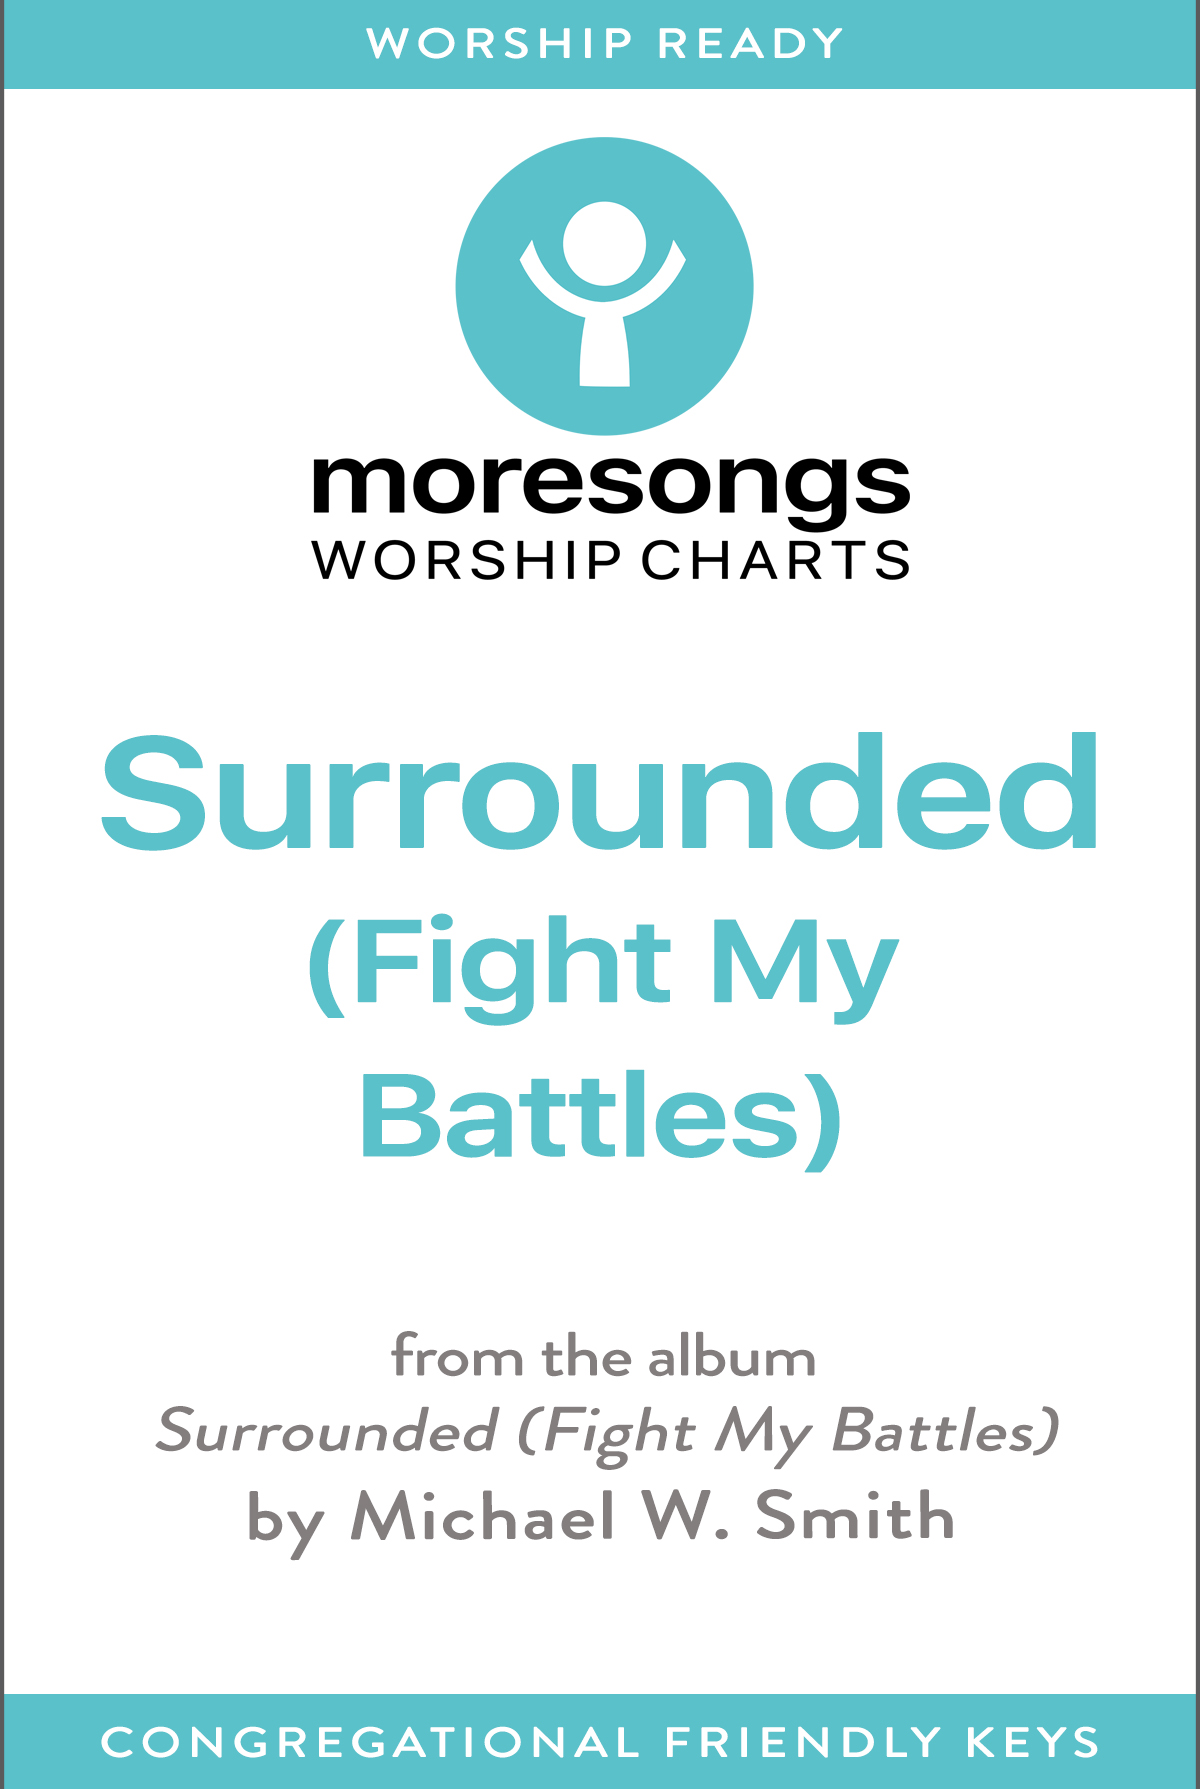 Surrounded (Fight My Battles) (Downloadable Lead Sheet)